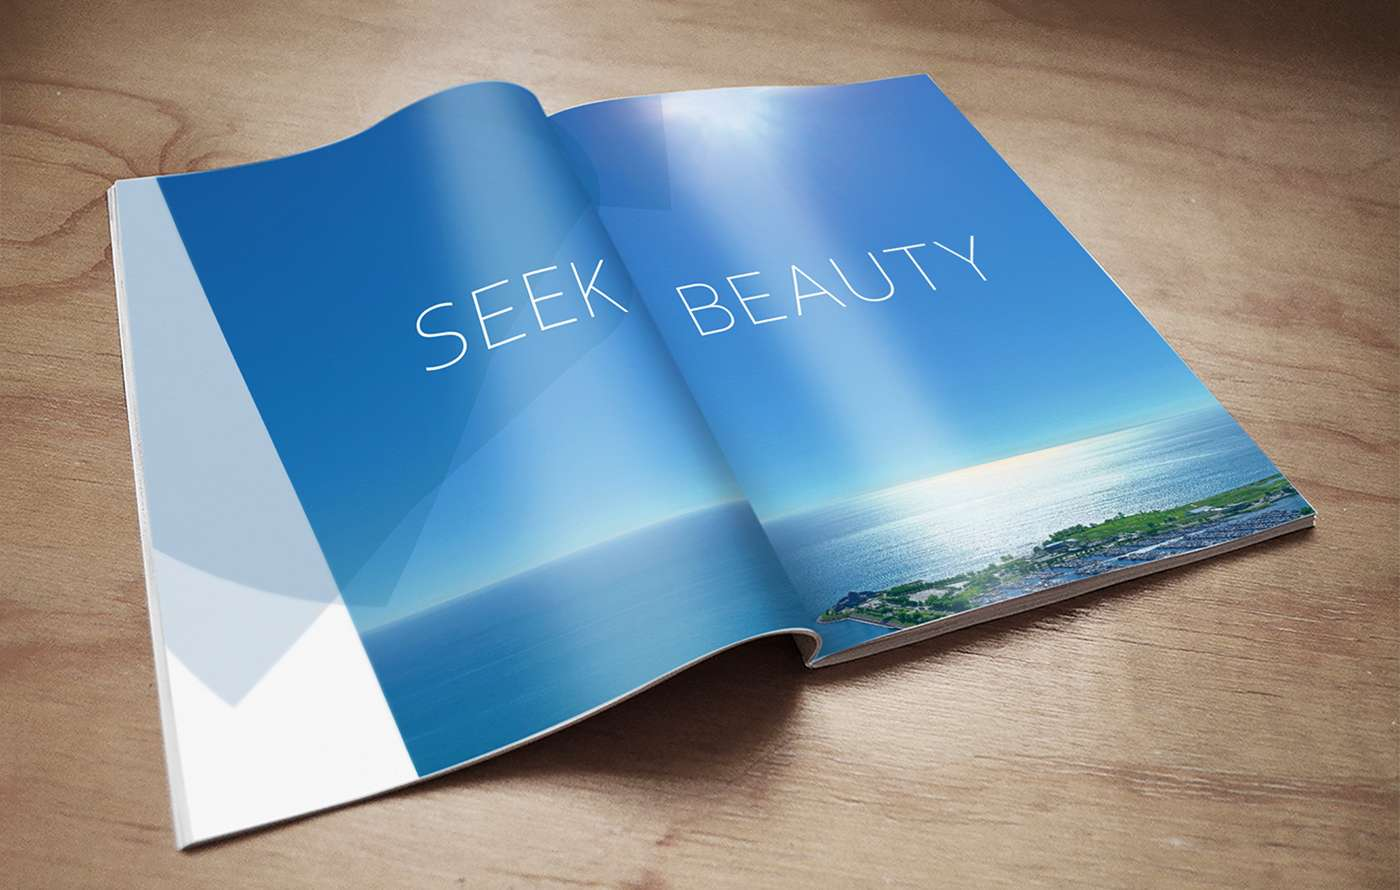 Print ad with initial 1000M teaser campaign and tagline Seek Beauty